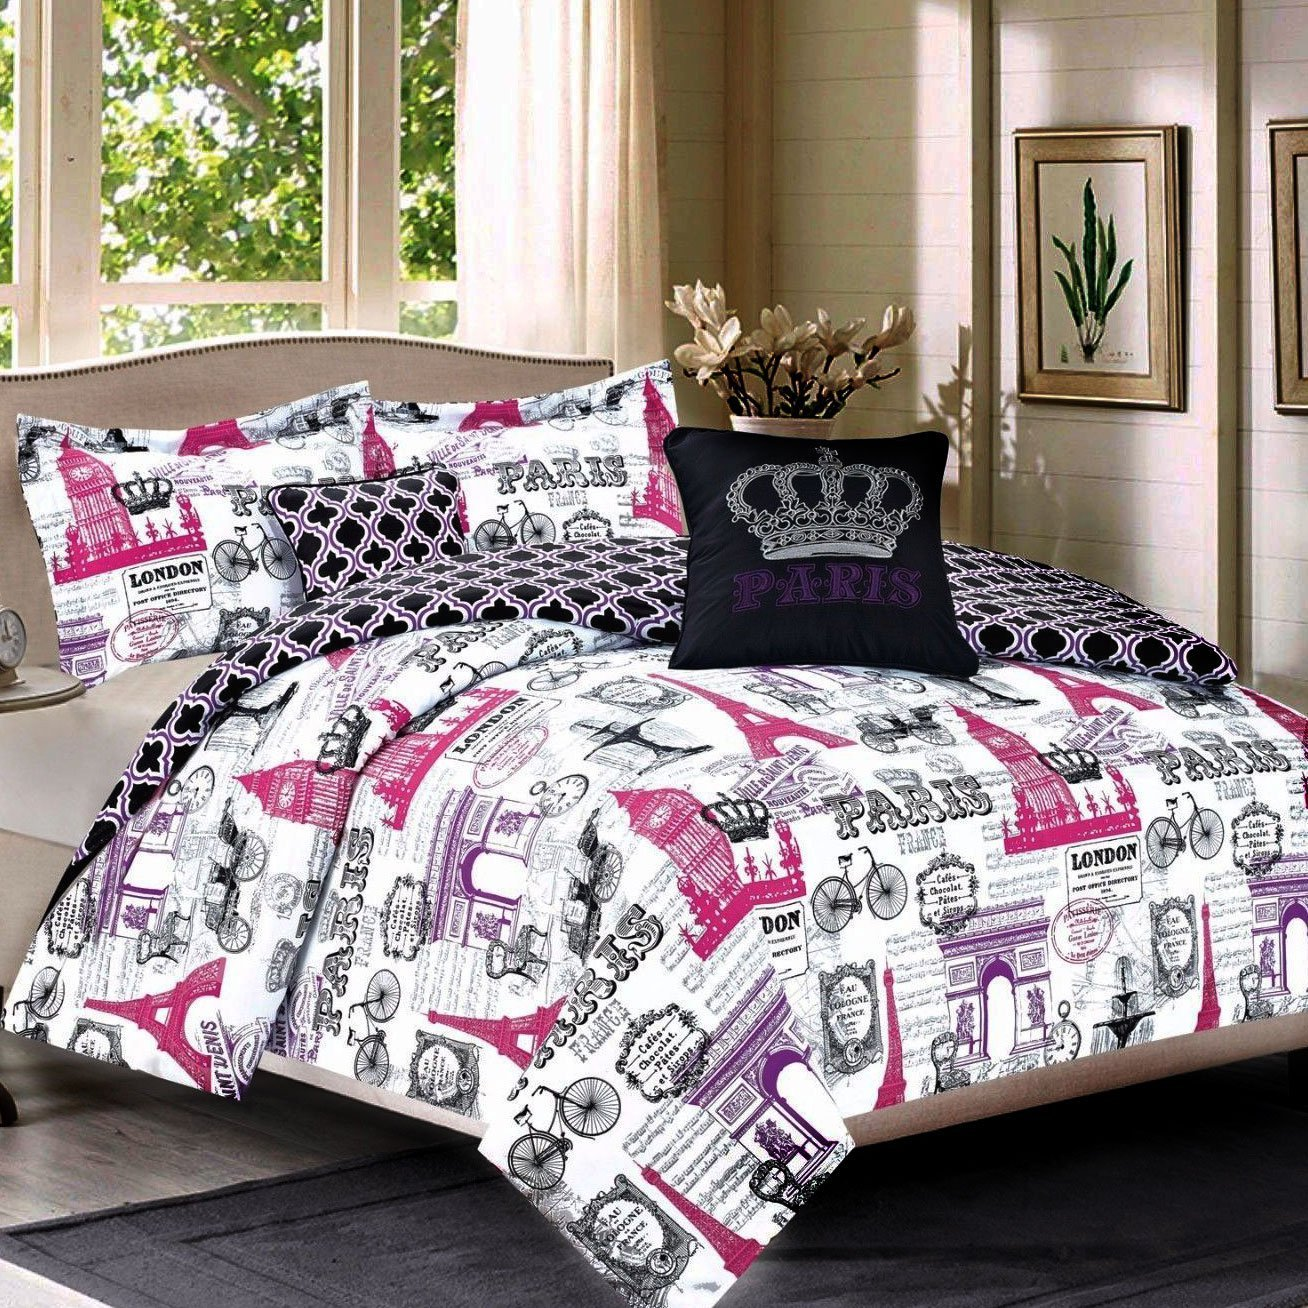 Bedding King 5 Piece Girls Comforter Bed Set, Paris Eiffel Tower London, Pink and Purple